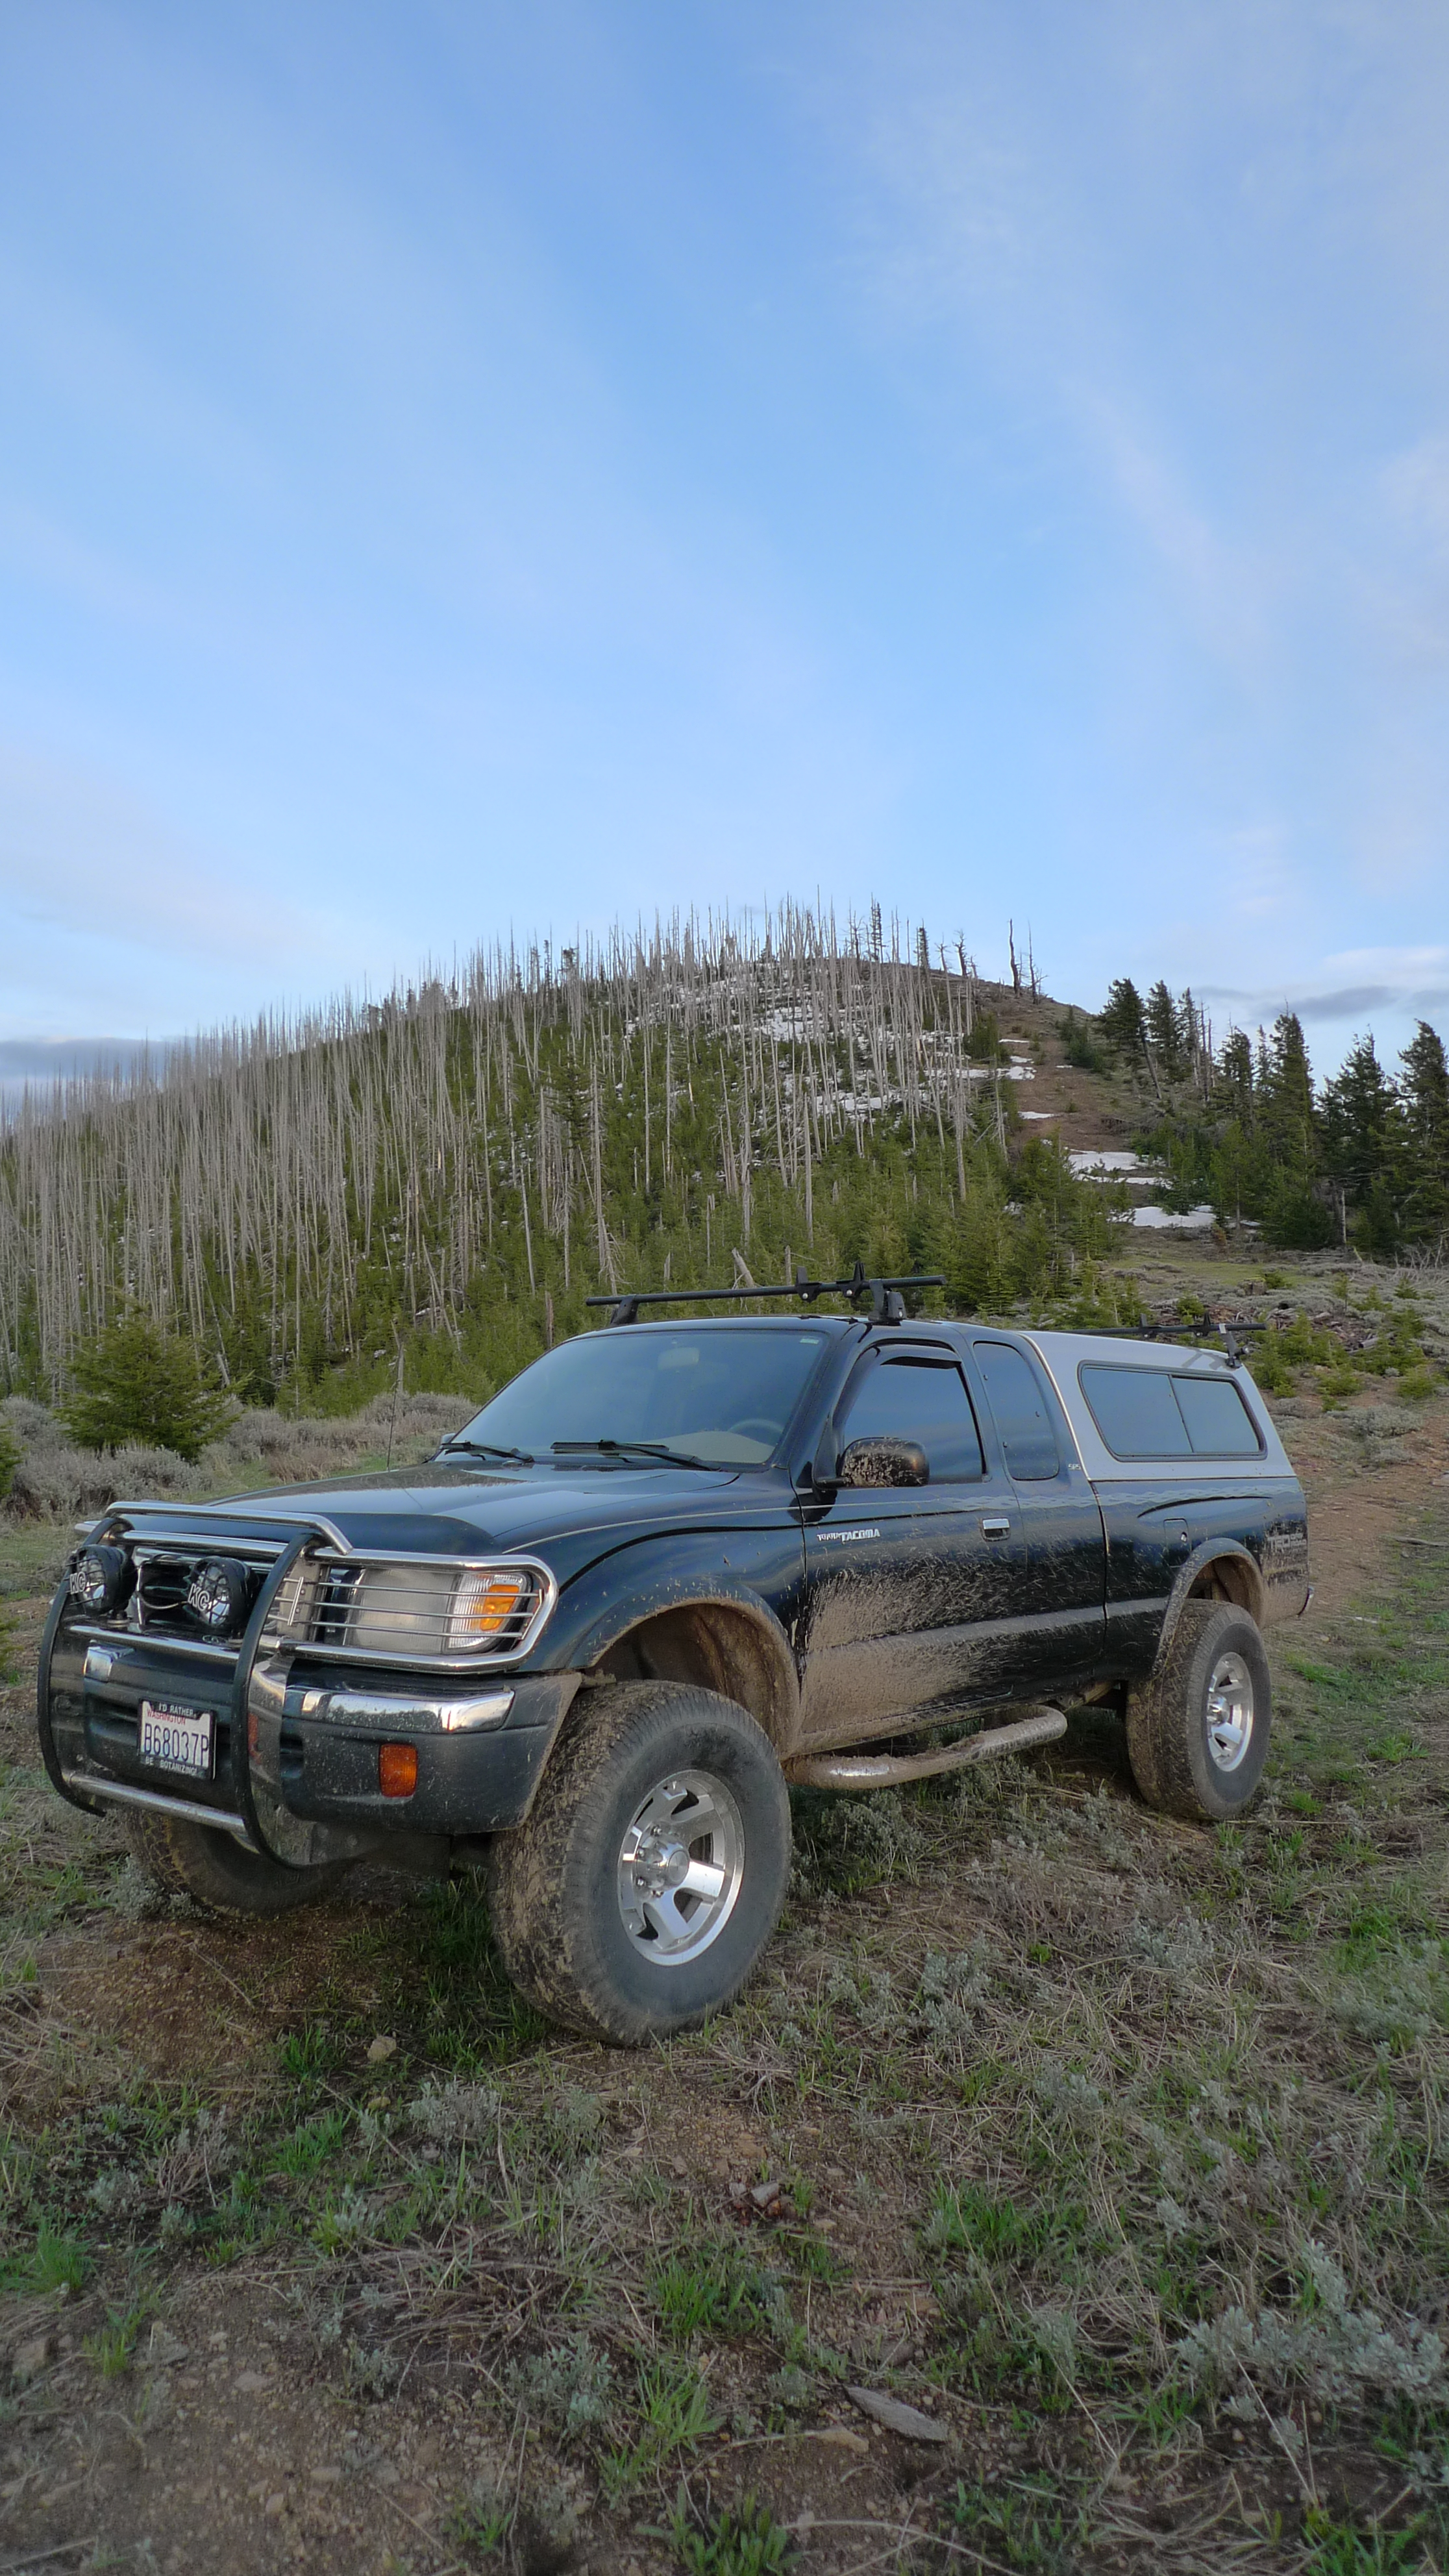 File:Toyota Tacoma 1999 on Chumstick Mountain Chelan County